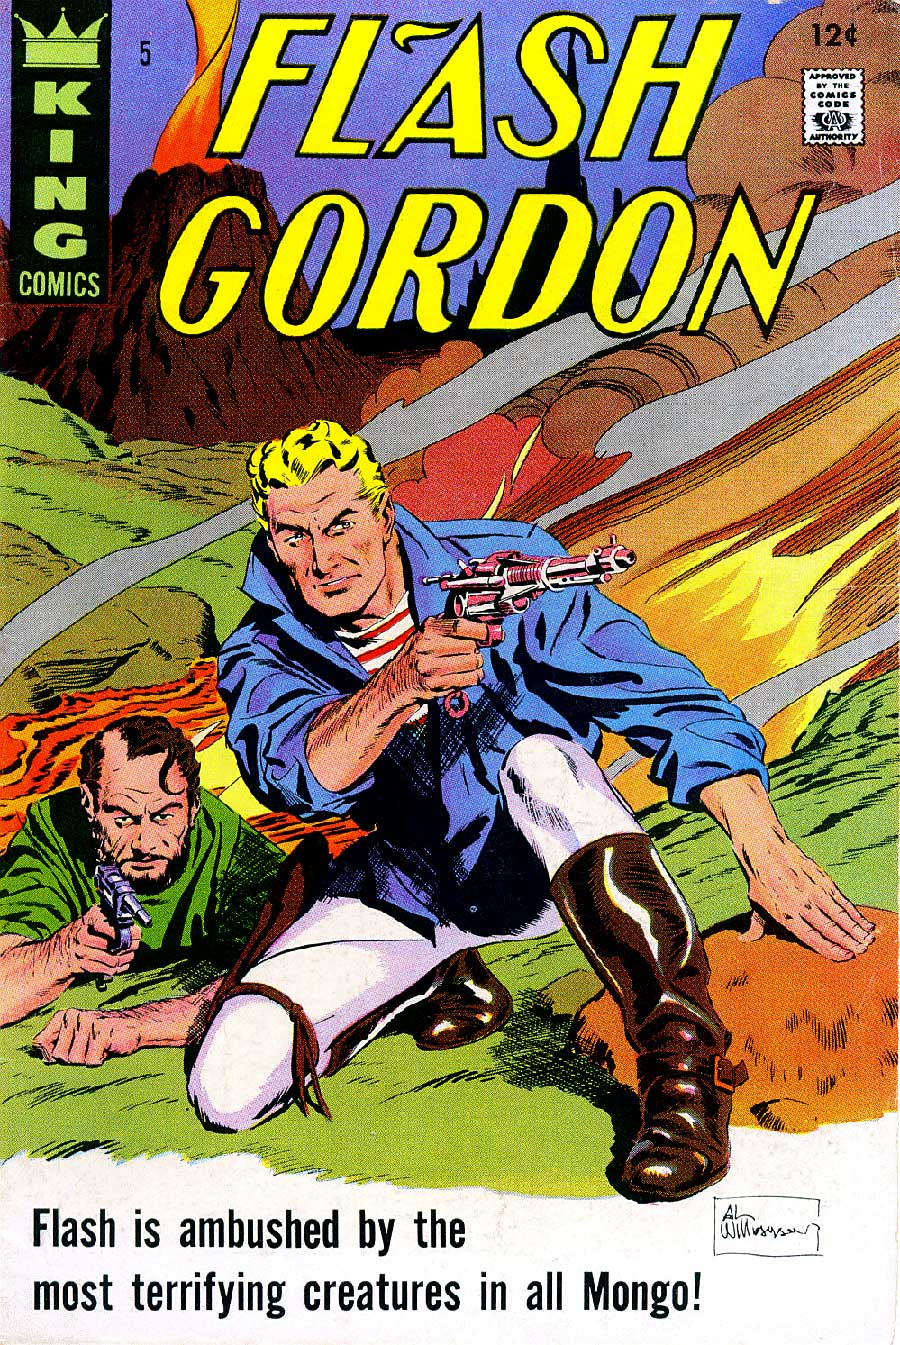 Flash Gordon v4 #5 1960s silver age science fiction comic book cover art by Al Williamson